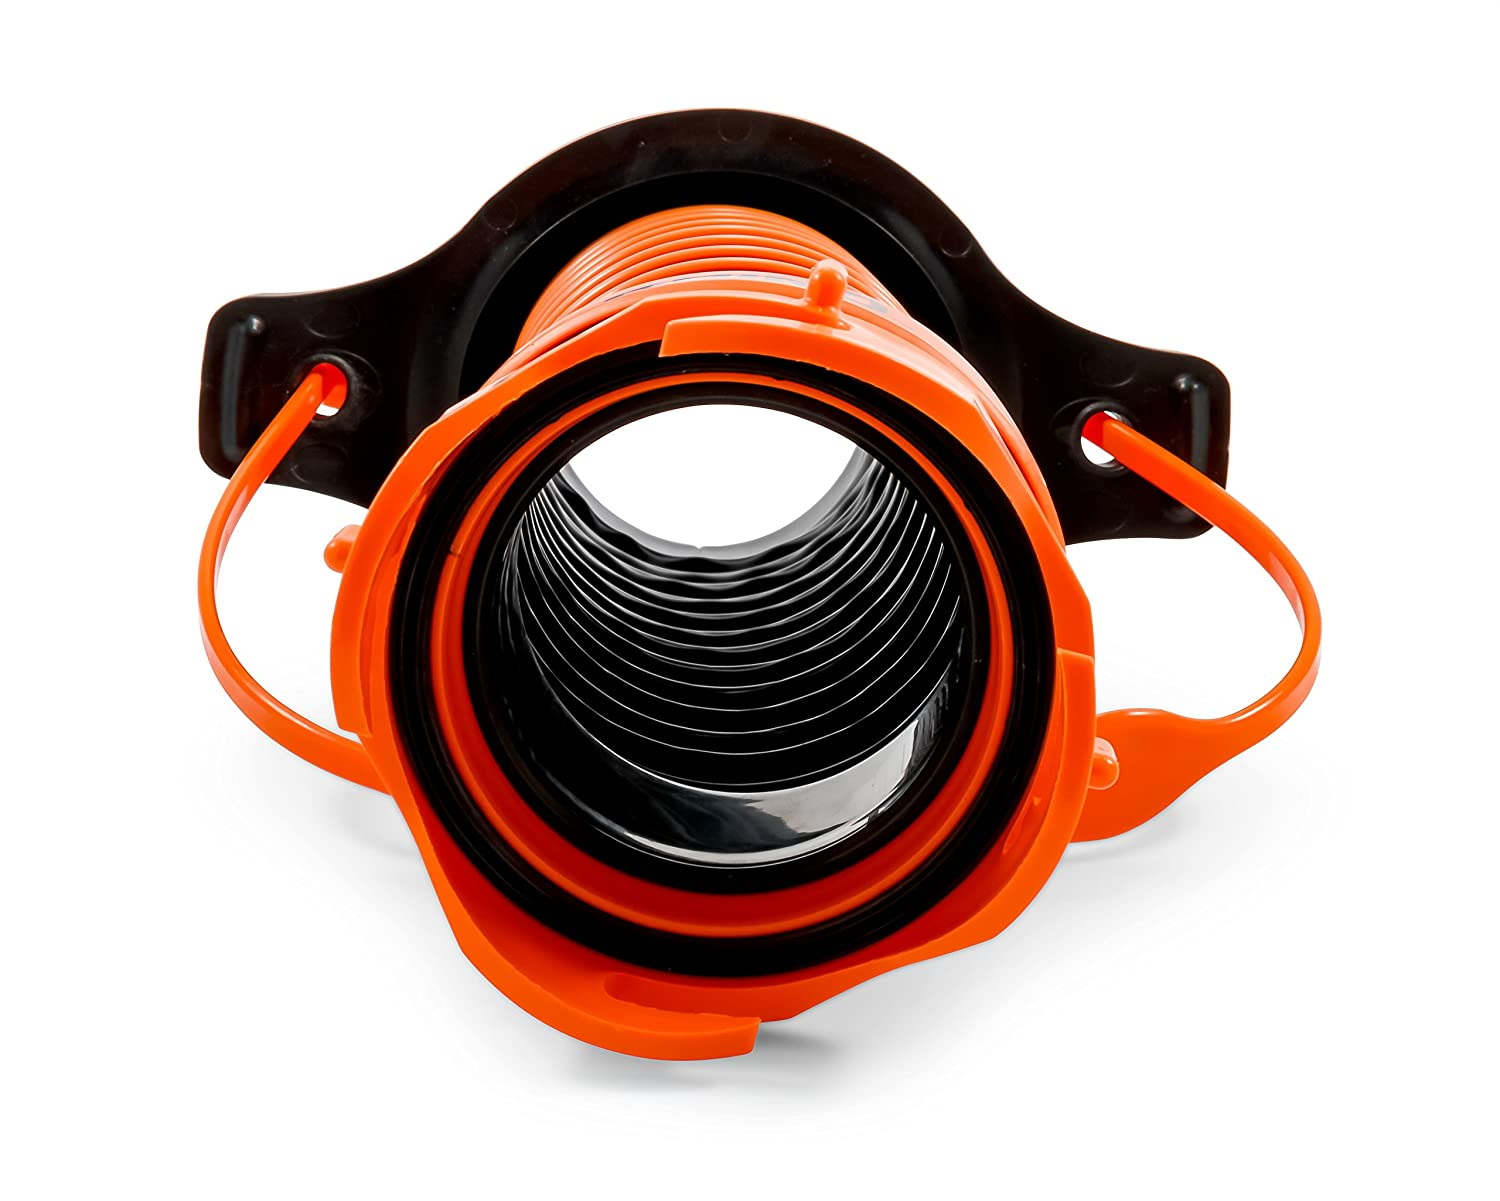 Black Camco 39318 Flexible 3-in-1 Sewer Hose Seal